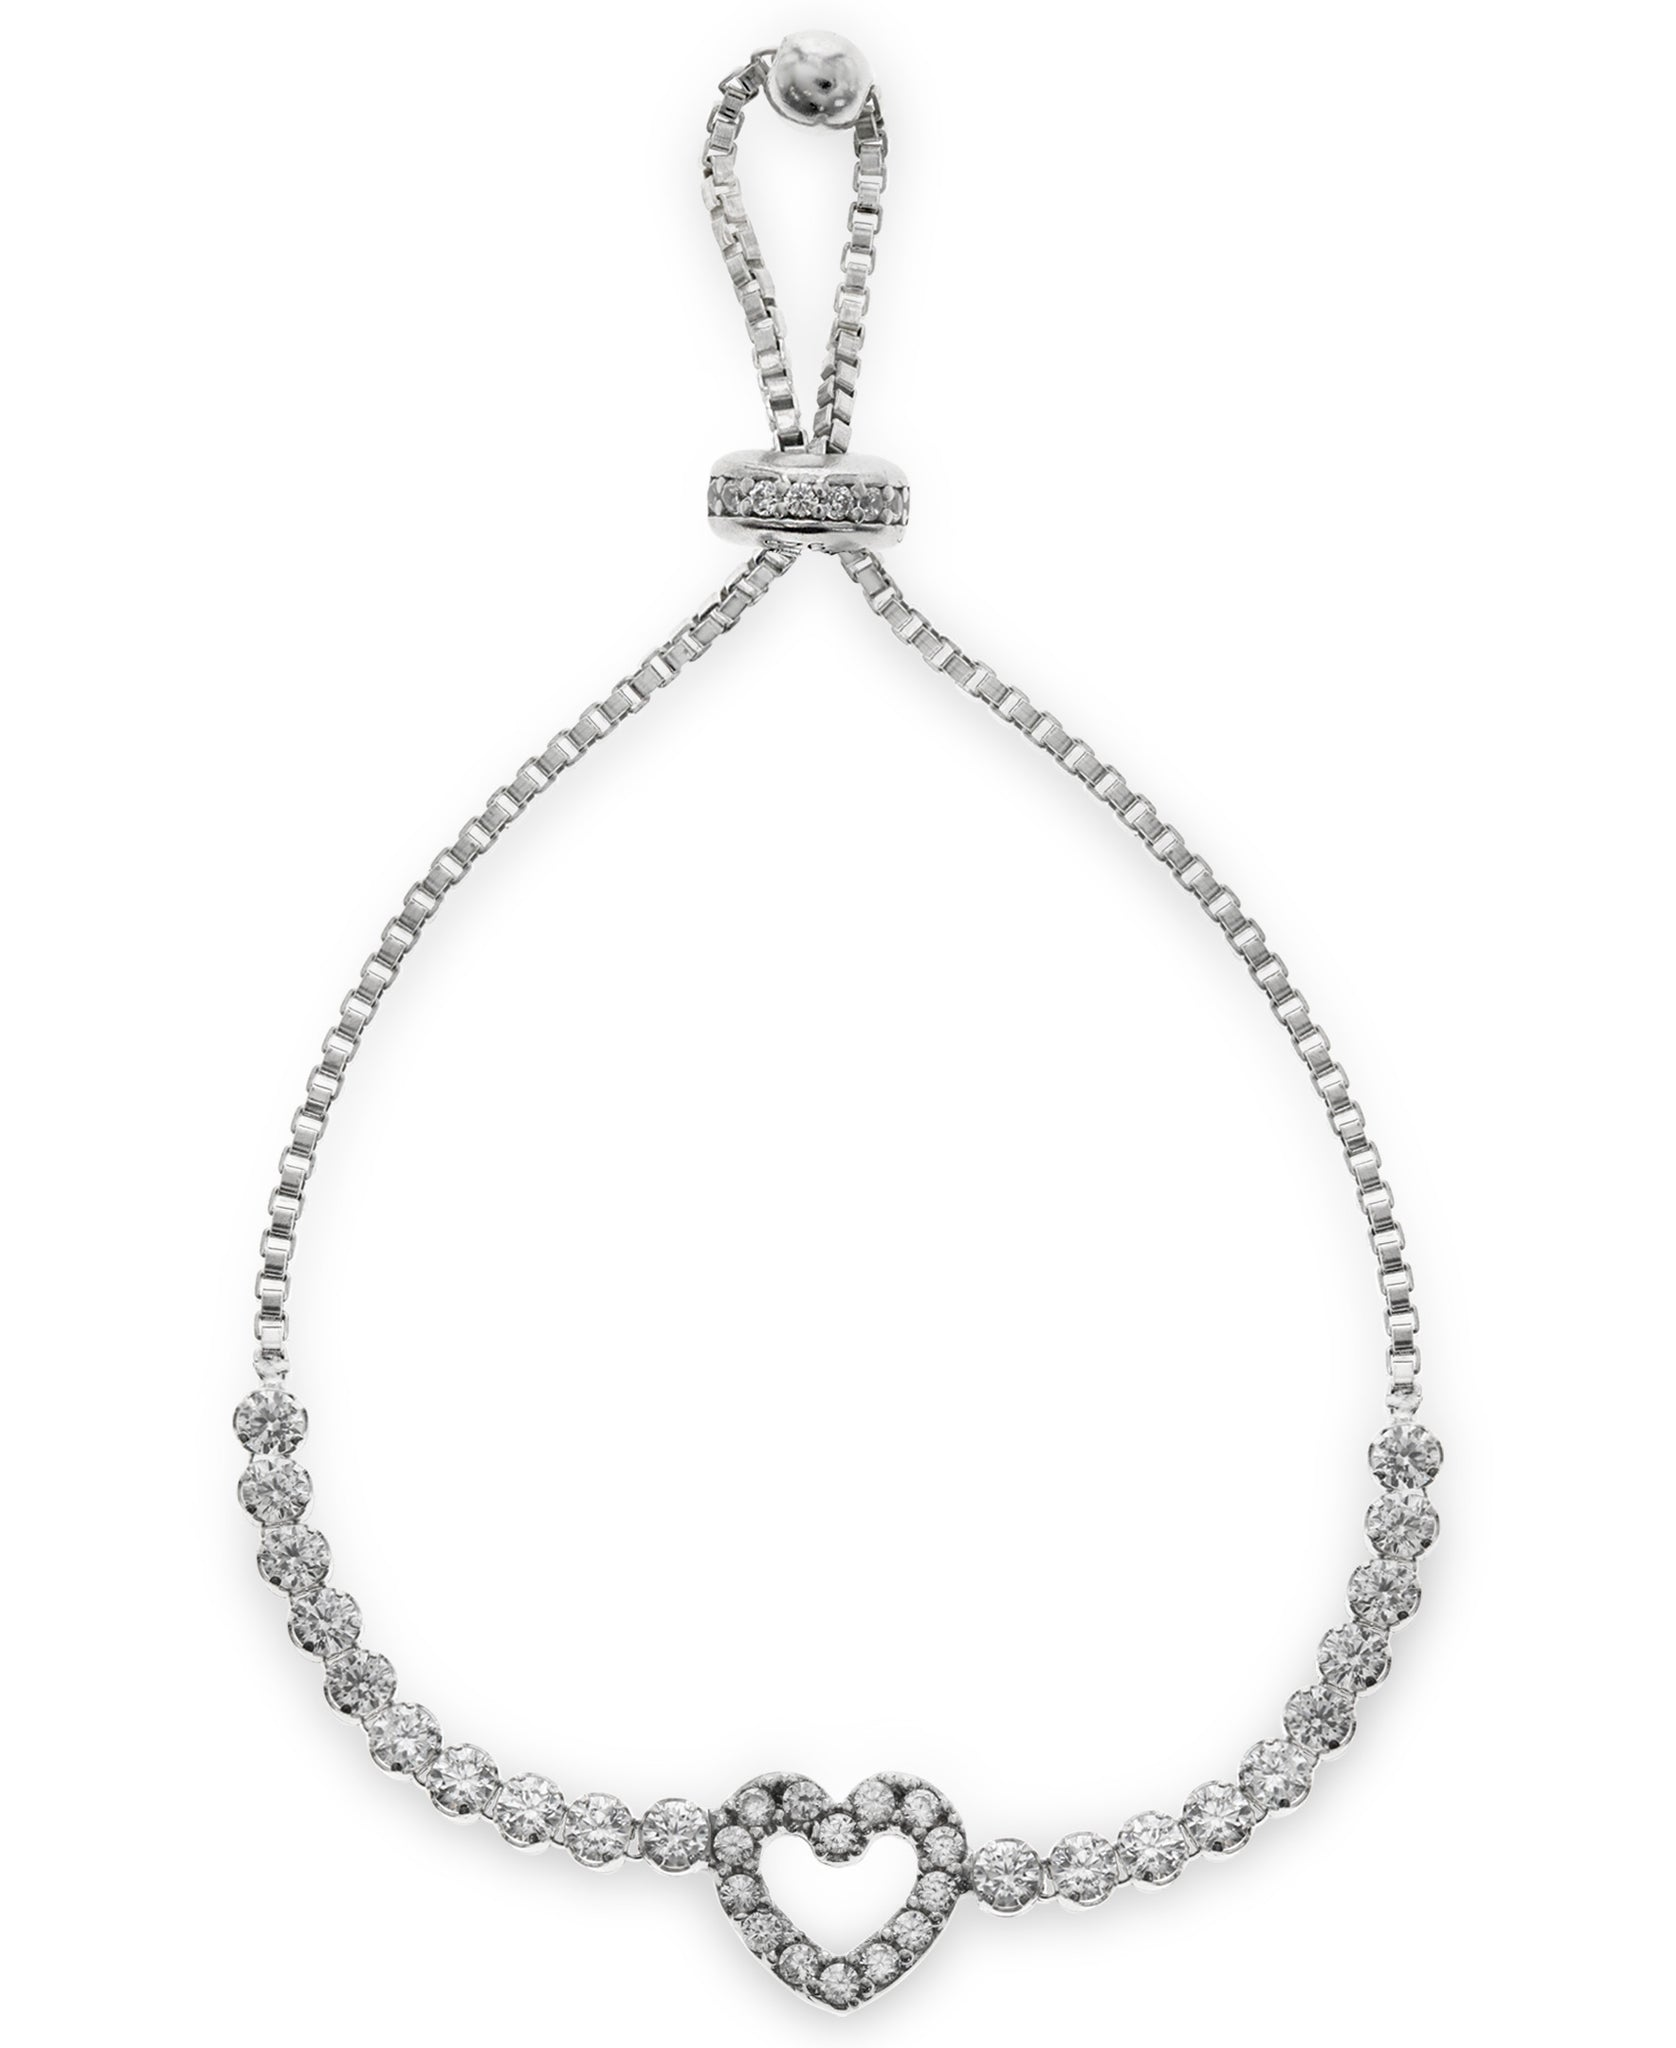 Children's Sterling Silver Cubic Zirconia Heart Friendship Bracelet - Rhona Sutton Jewellery